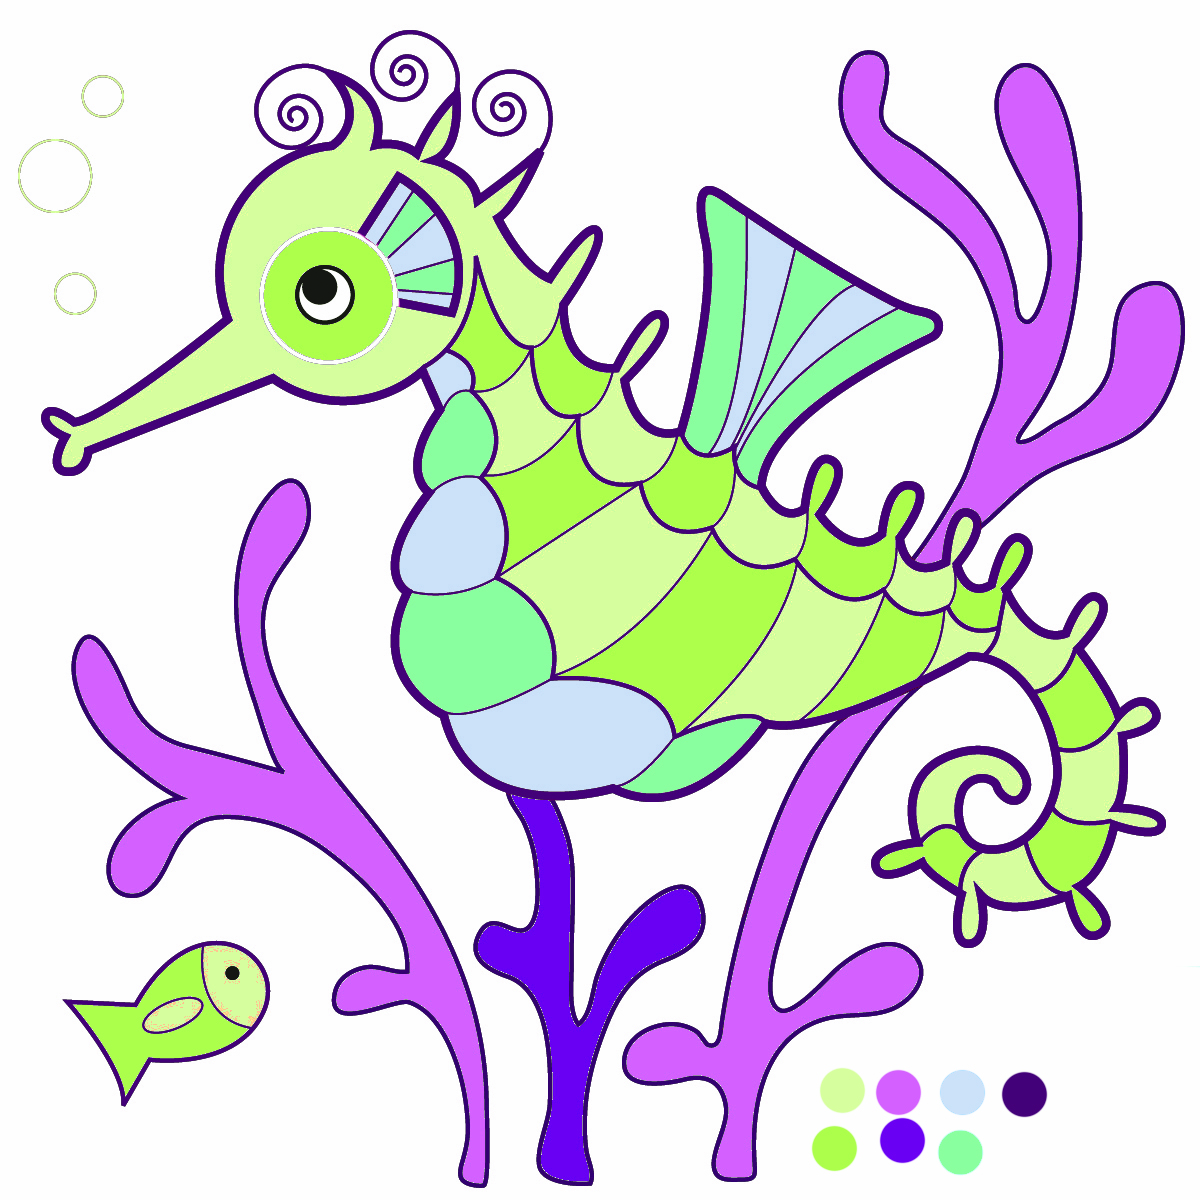 Seahorse clip art images free clipart